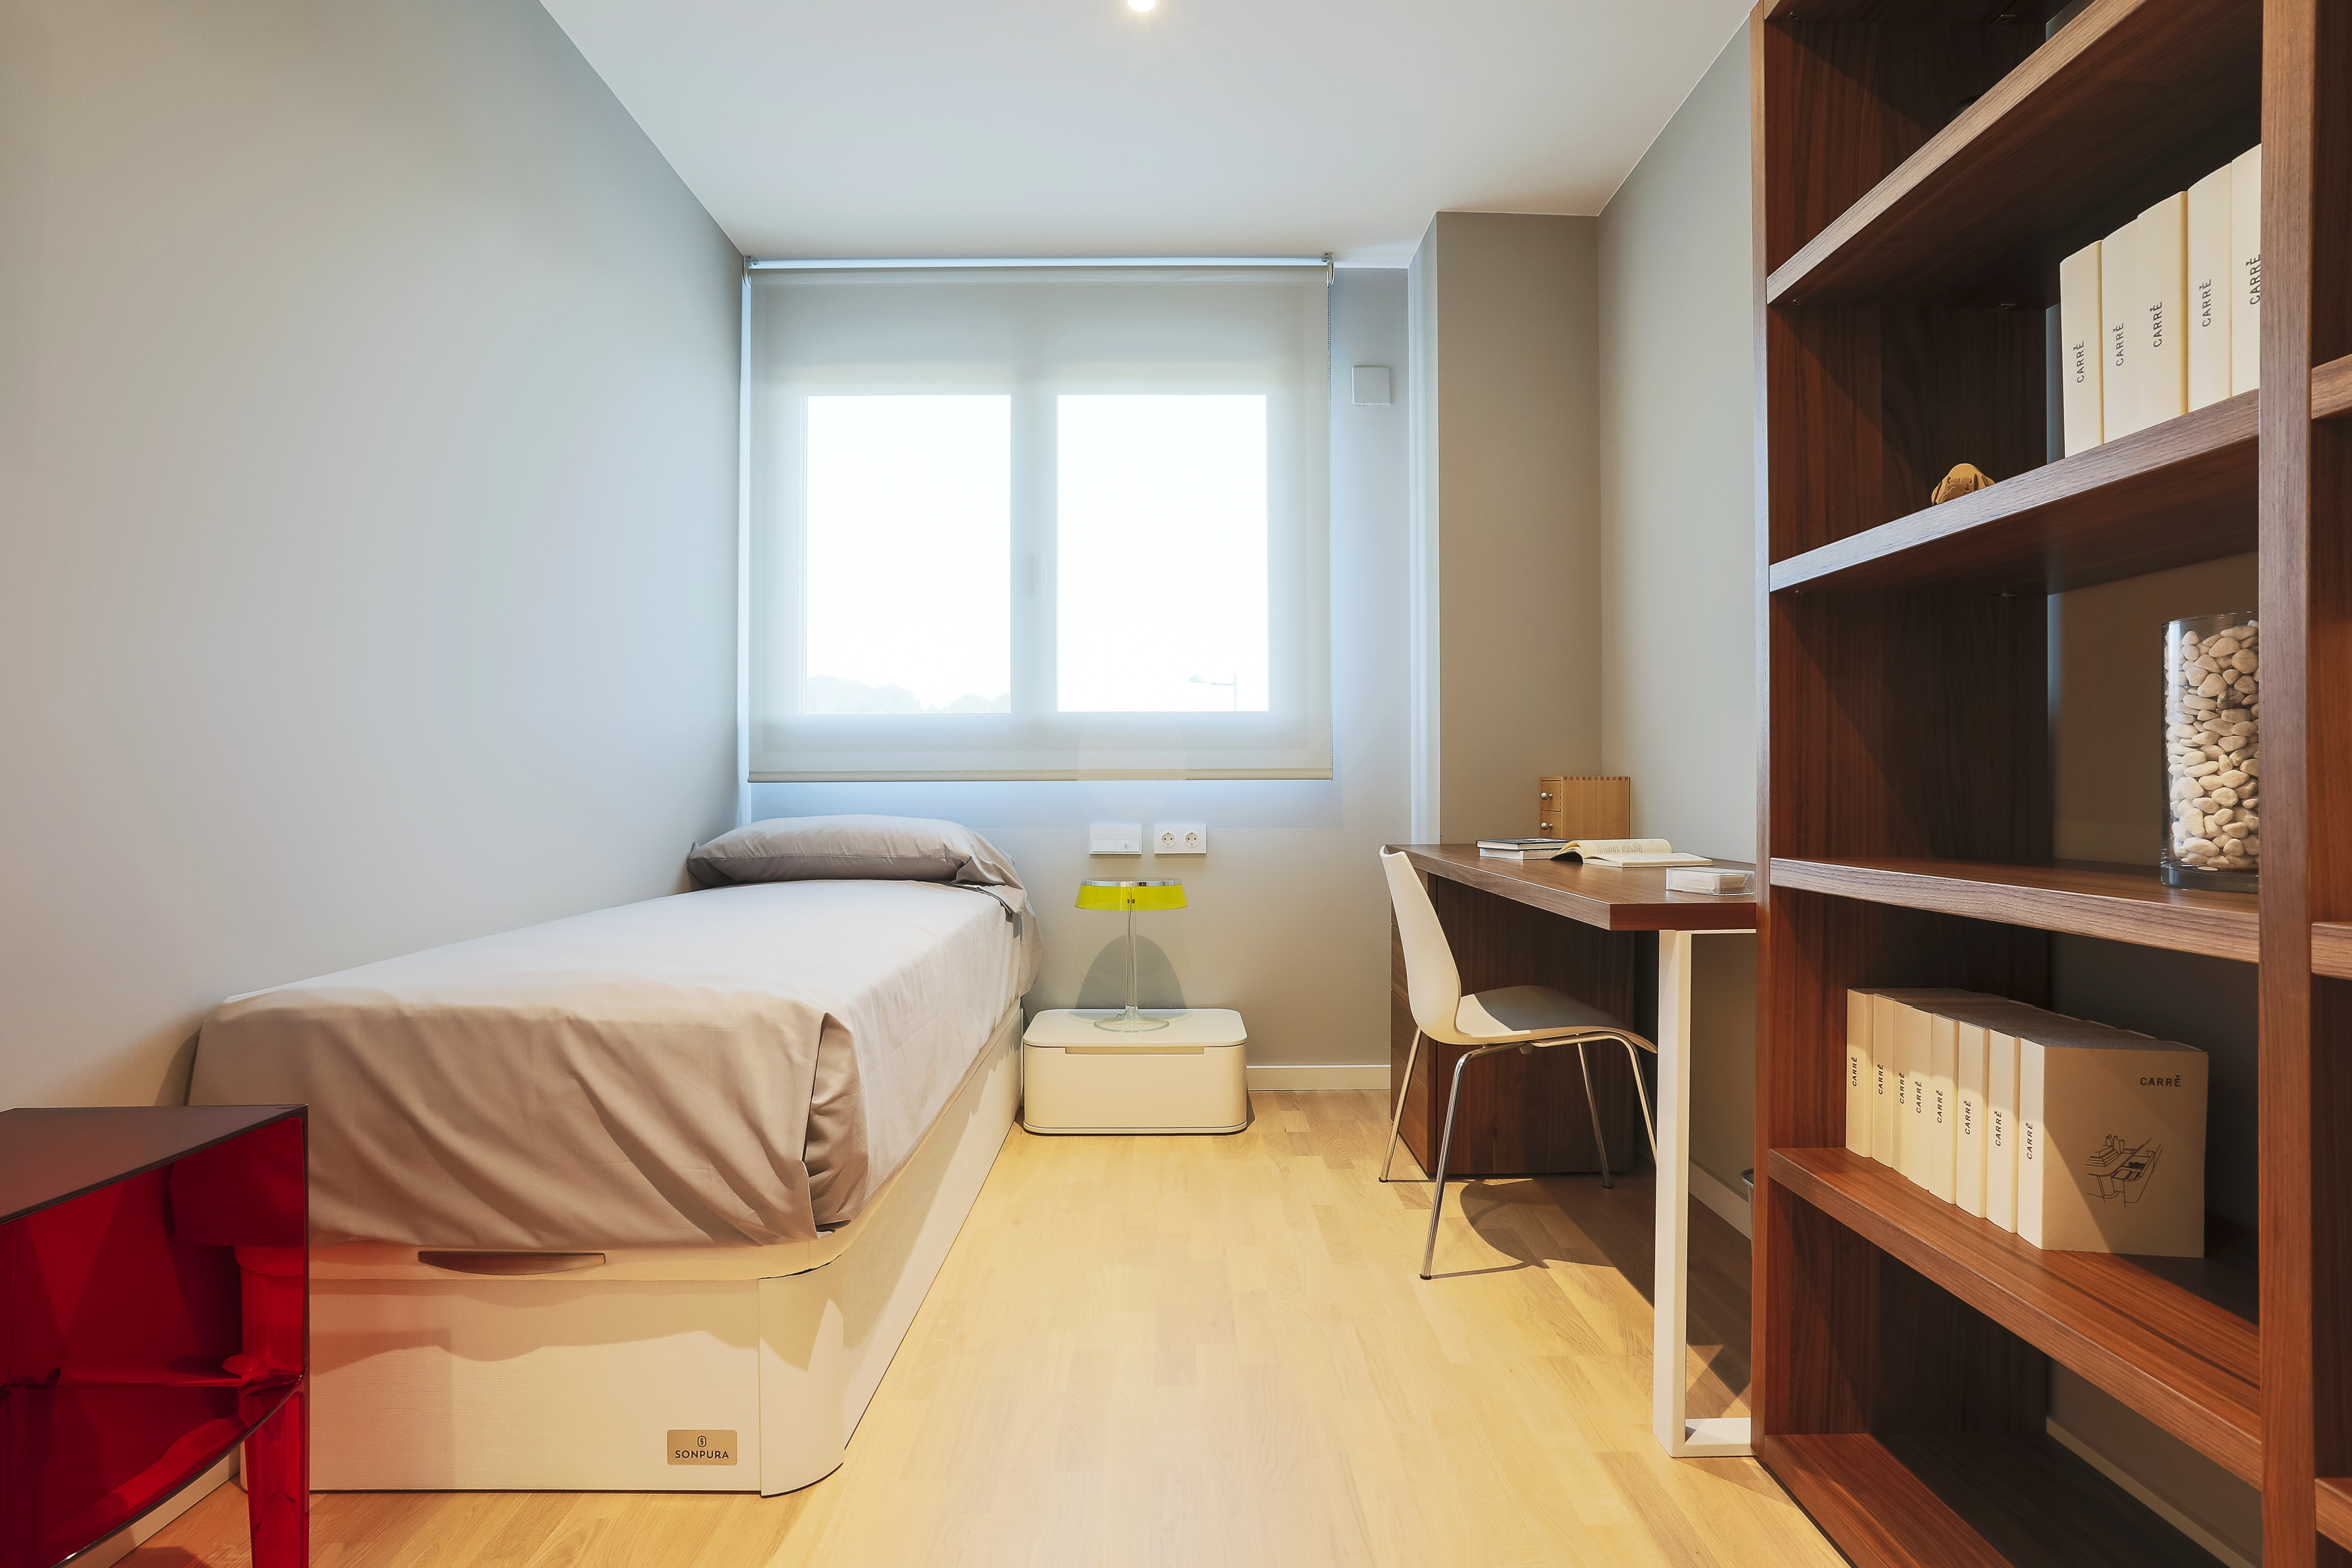 Apartment in sant cugat - barcelona surroundings. Private parking, Terrace.3 bedrooms. For sale: 439.000 €.